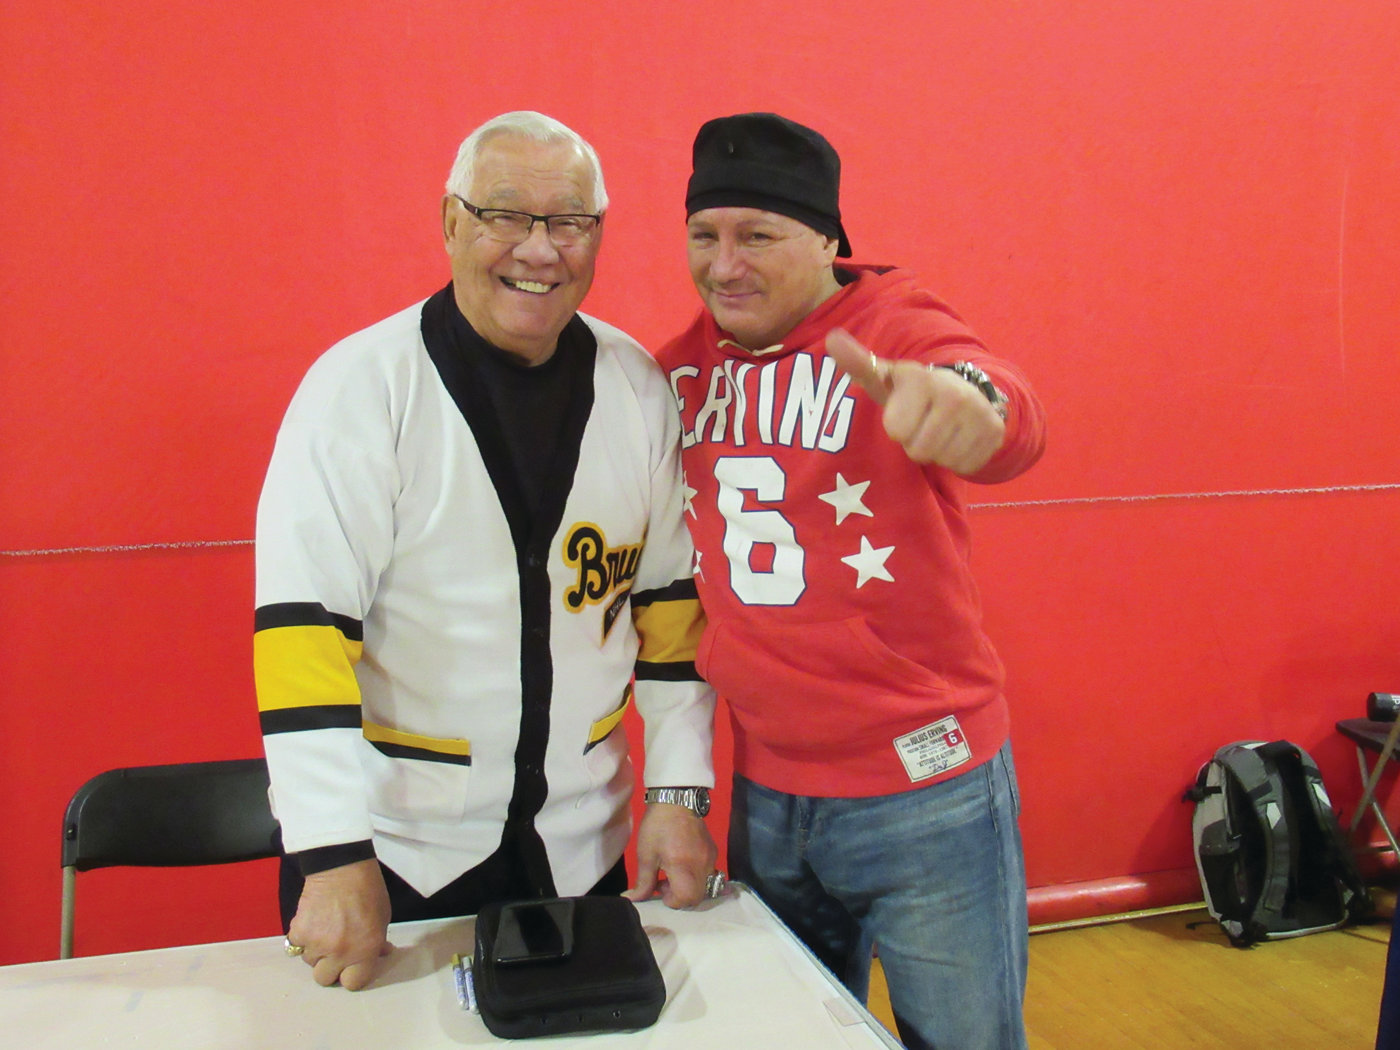 LINKED LEGENDS: Former Boston Bruins Hockey Hall of Famer John Bucyk and one-time World Champion boxer Vinny Paz were among the celebrities at last weekend's 41st Annual Card Show.